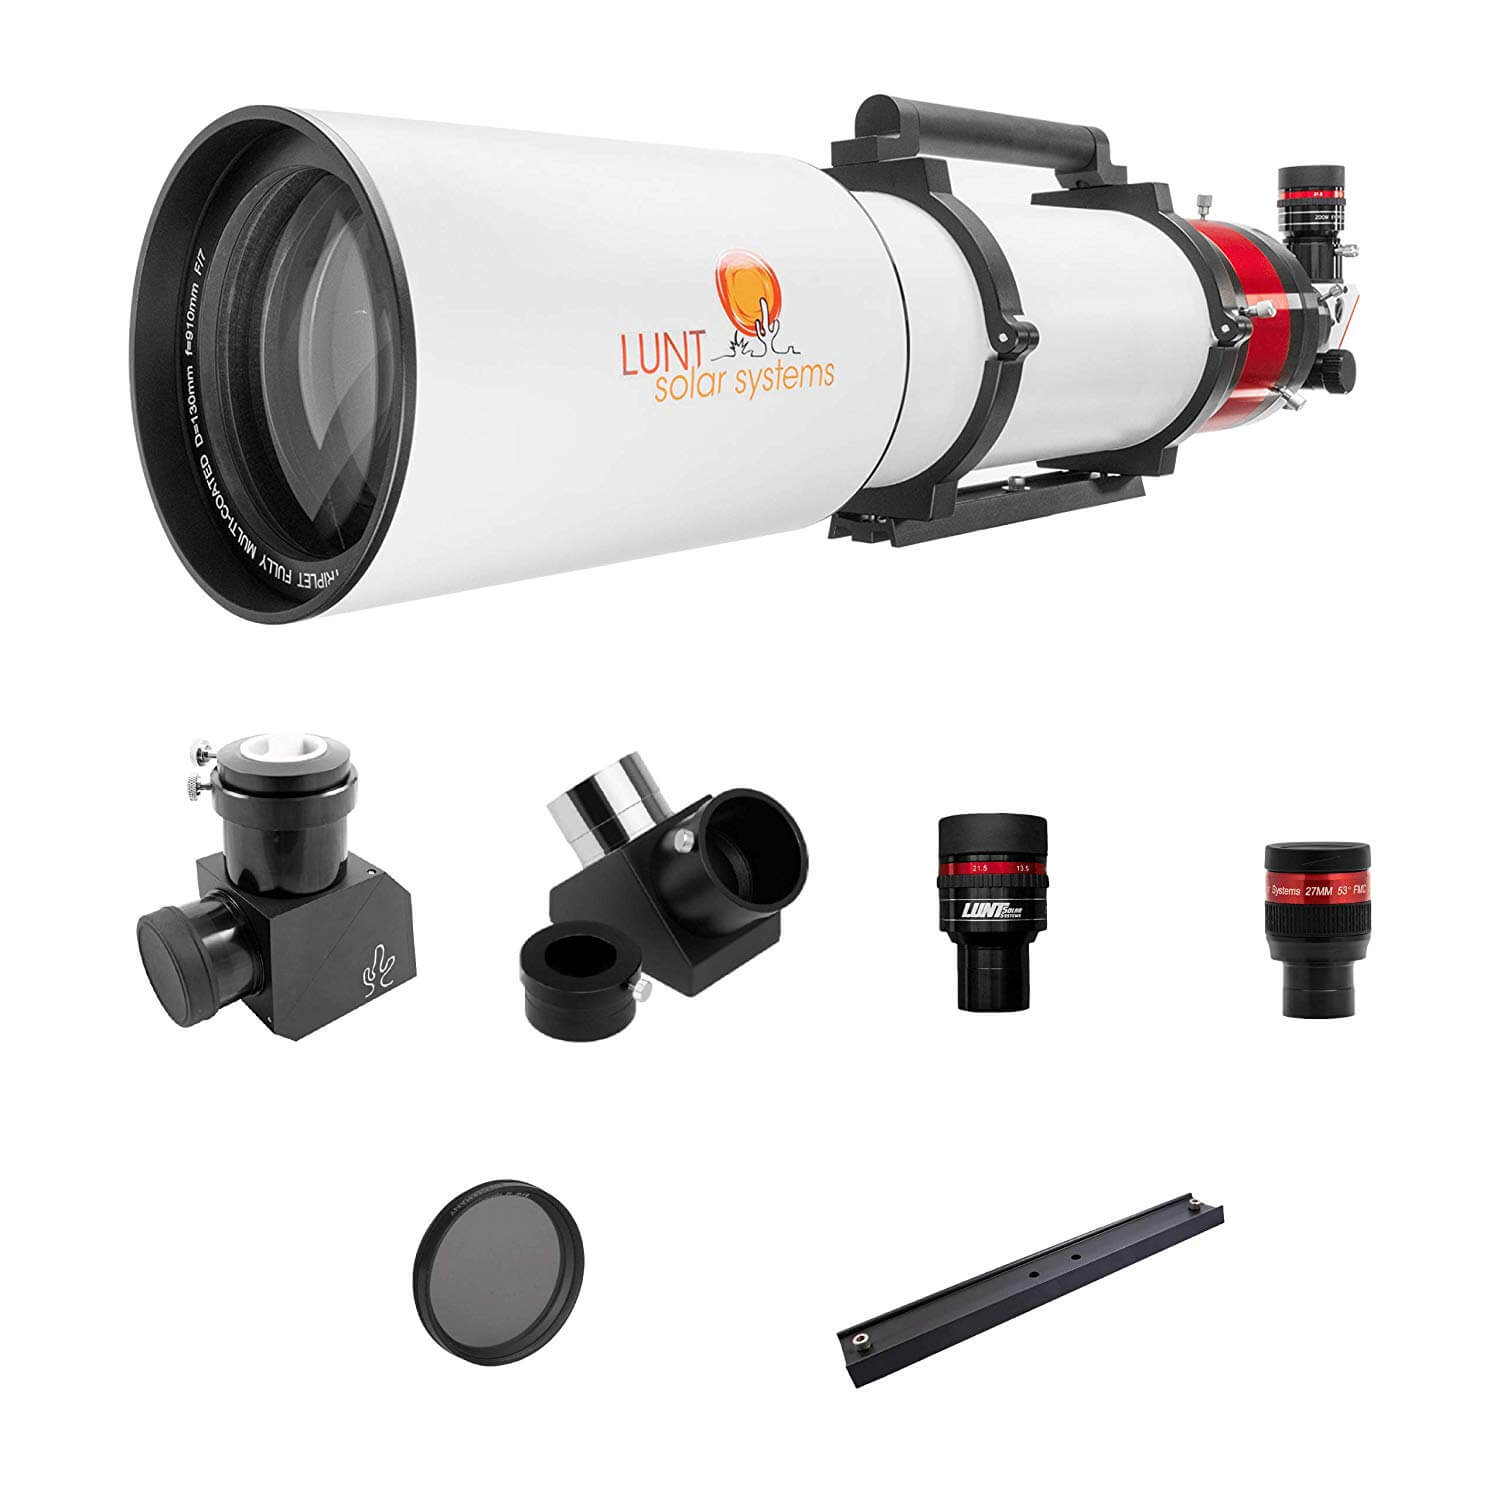 LUNT 130mm Observer Package w/ 12MM Blocking Filter - LS130MT